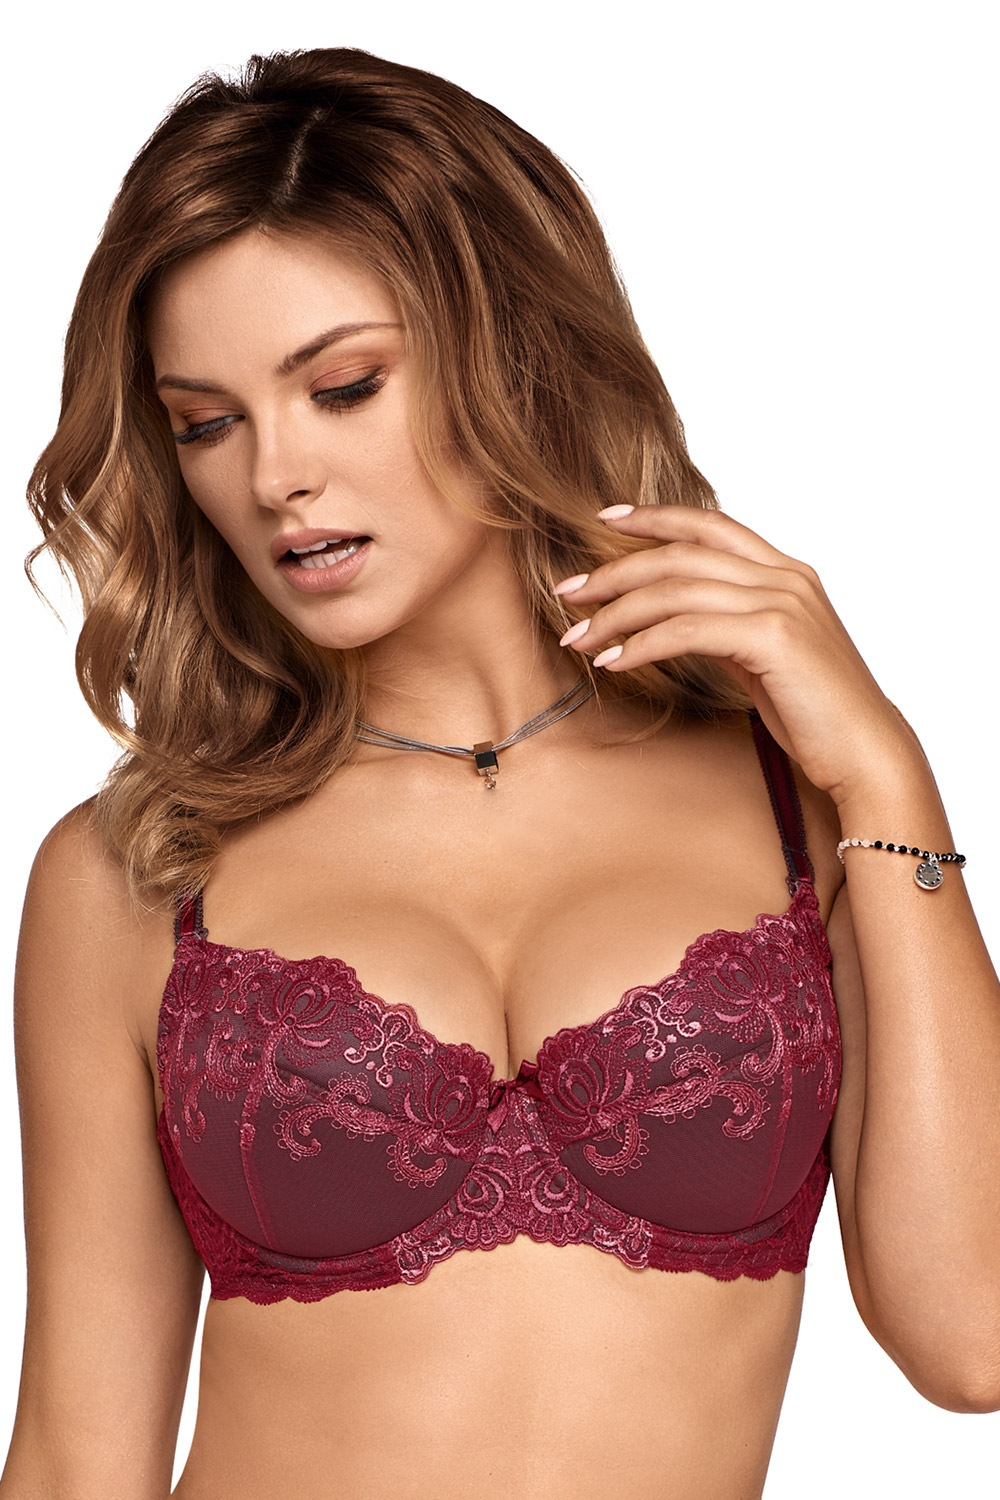 Podprsenka Rianna Push-Up bordo 65D